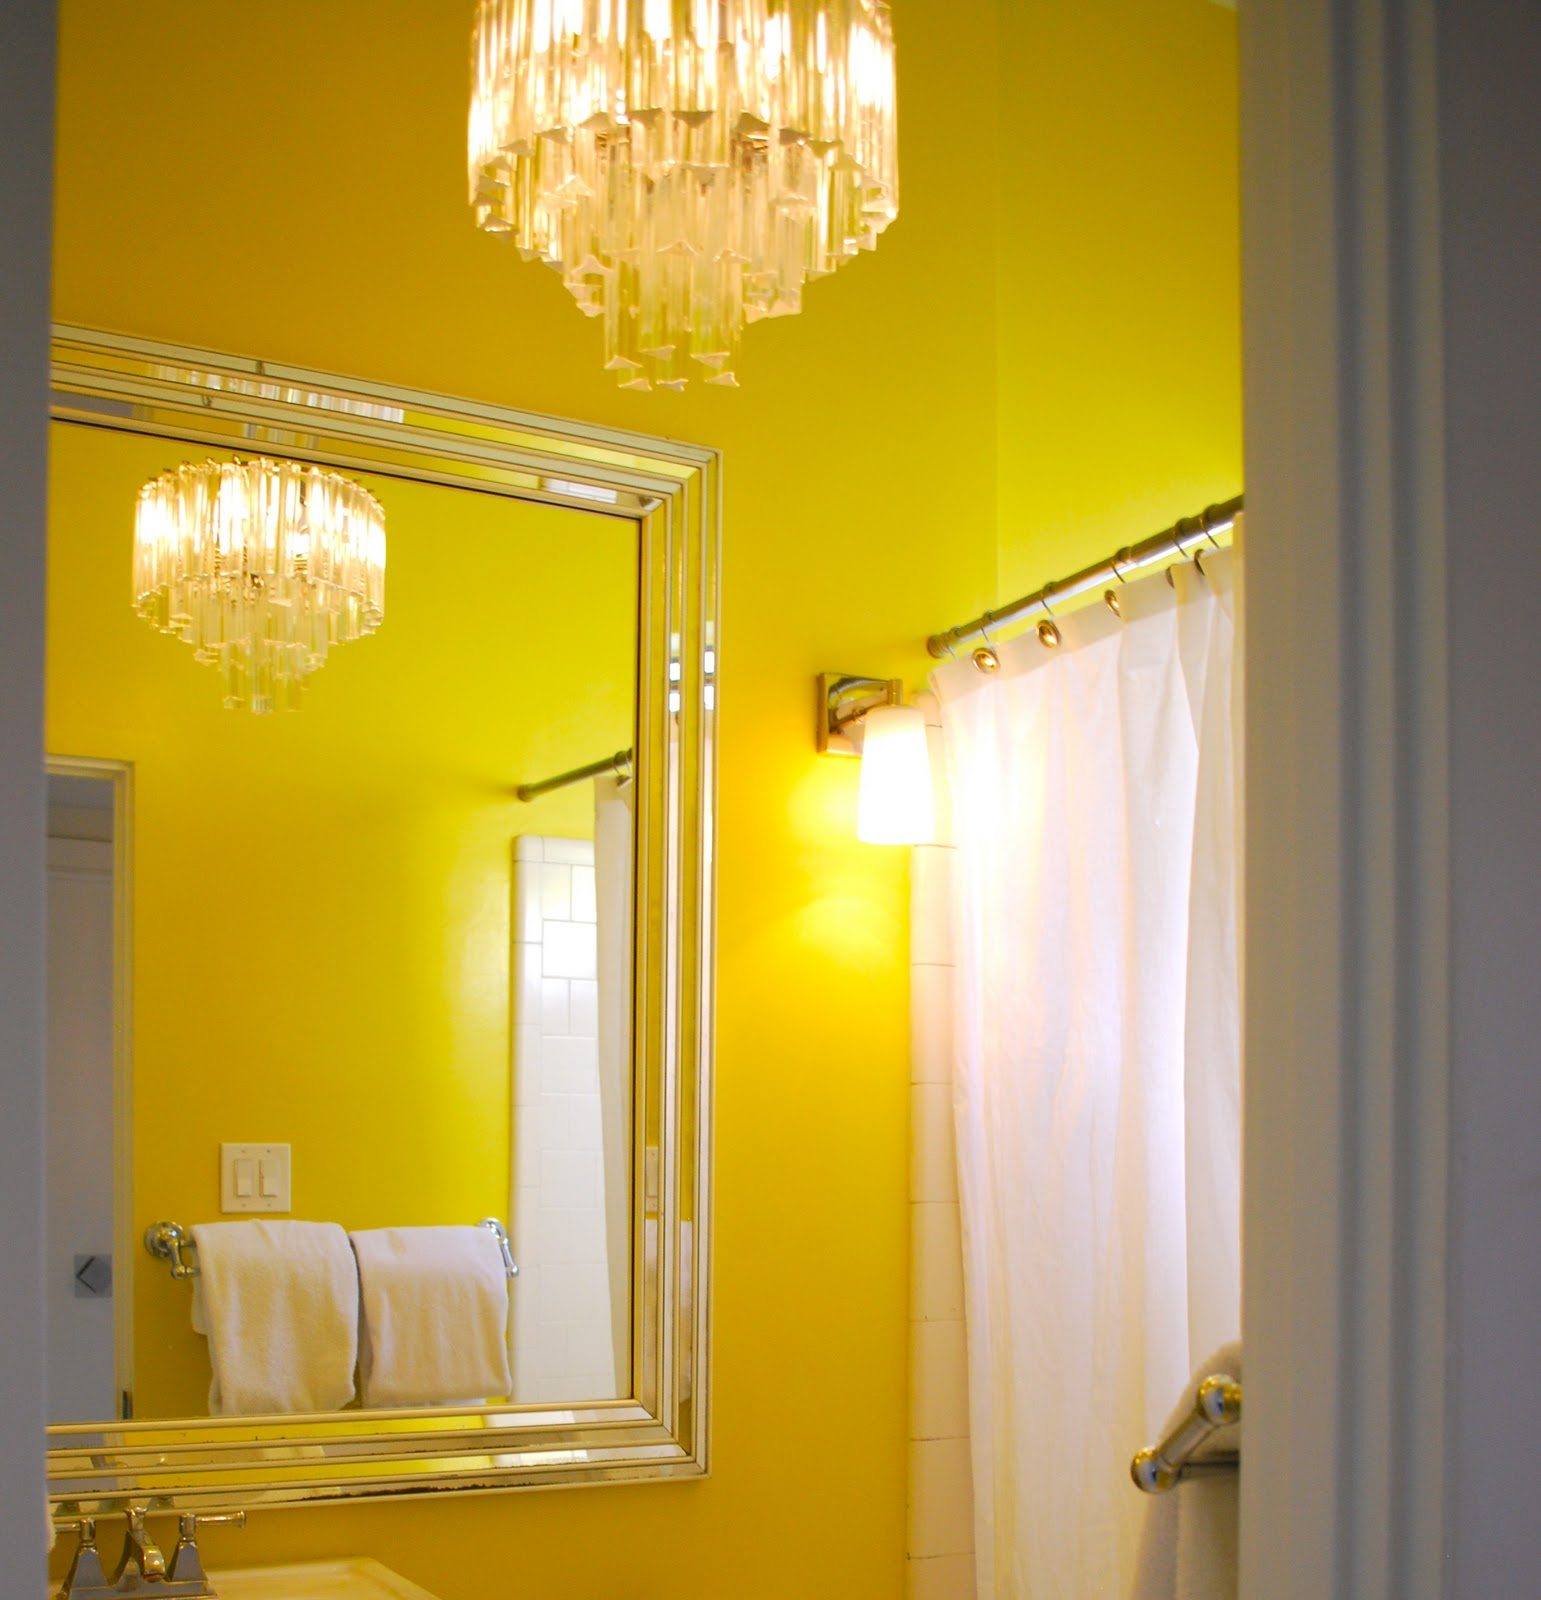 Bathroom Walls Sweating Yellow: Travelmoon: Palm Springs Hollywood Glam Home Tour